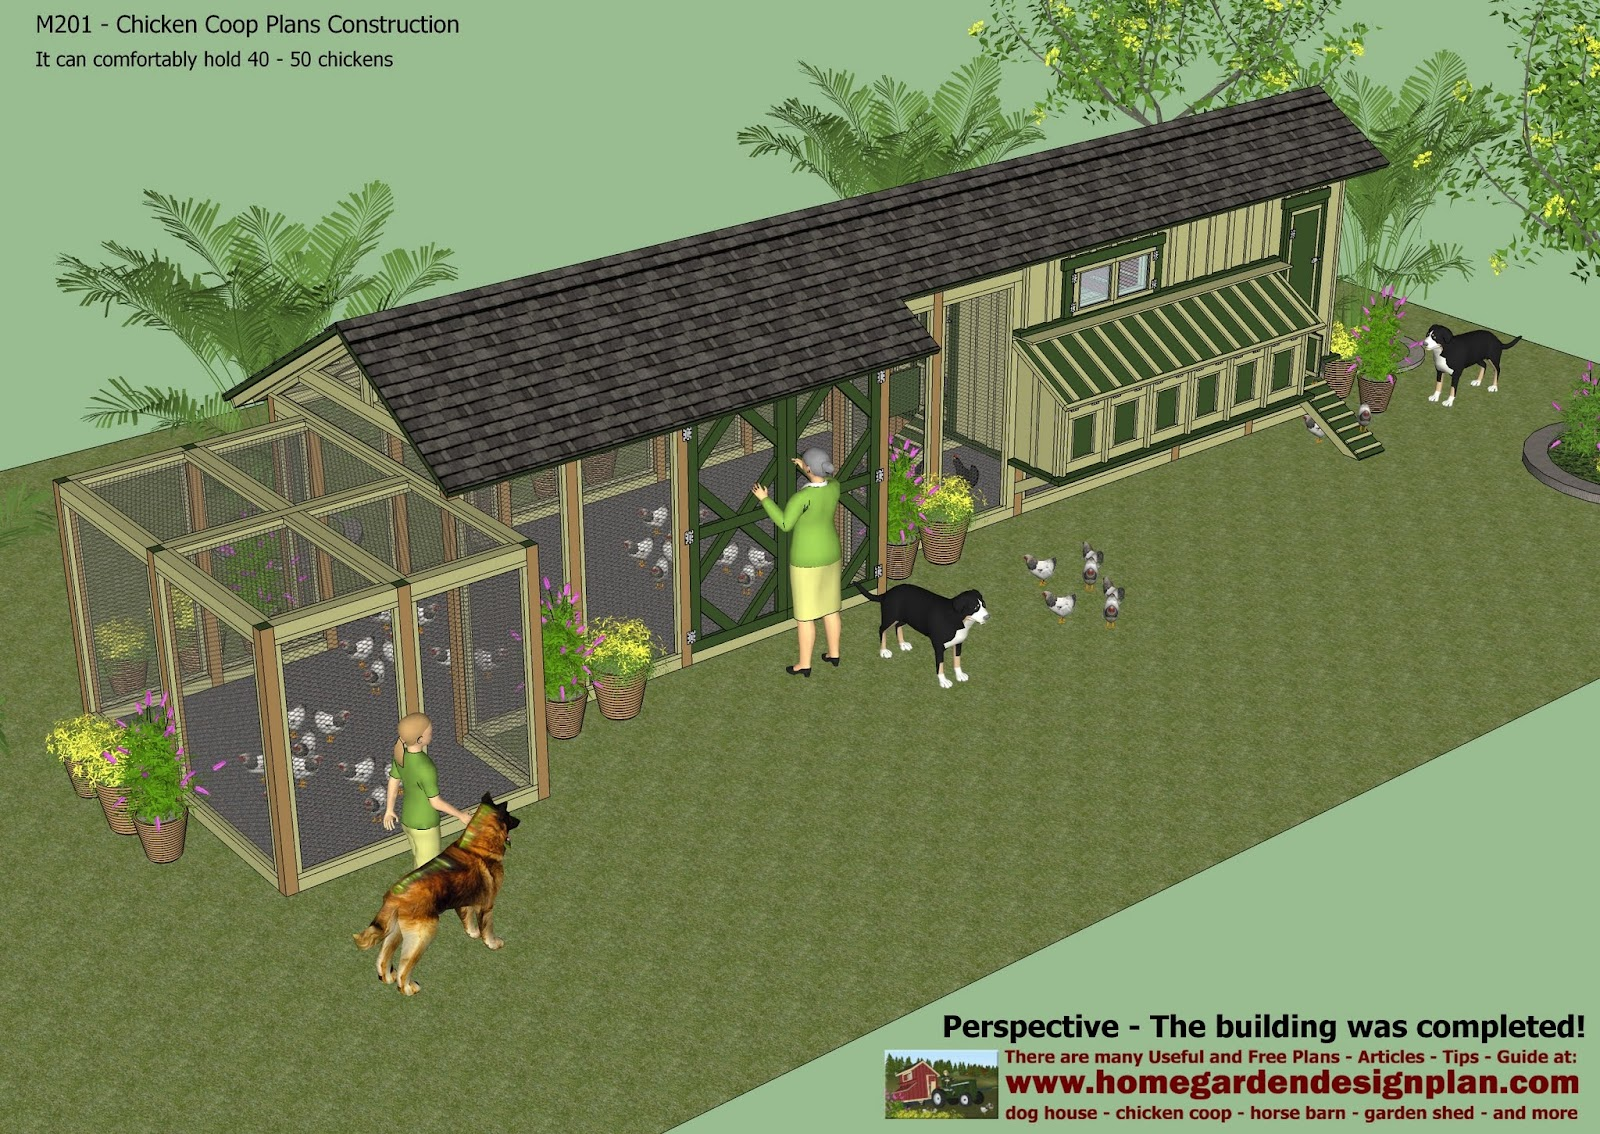 Chicken House Plans For 50 Chickens home garden plans: september 2013